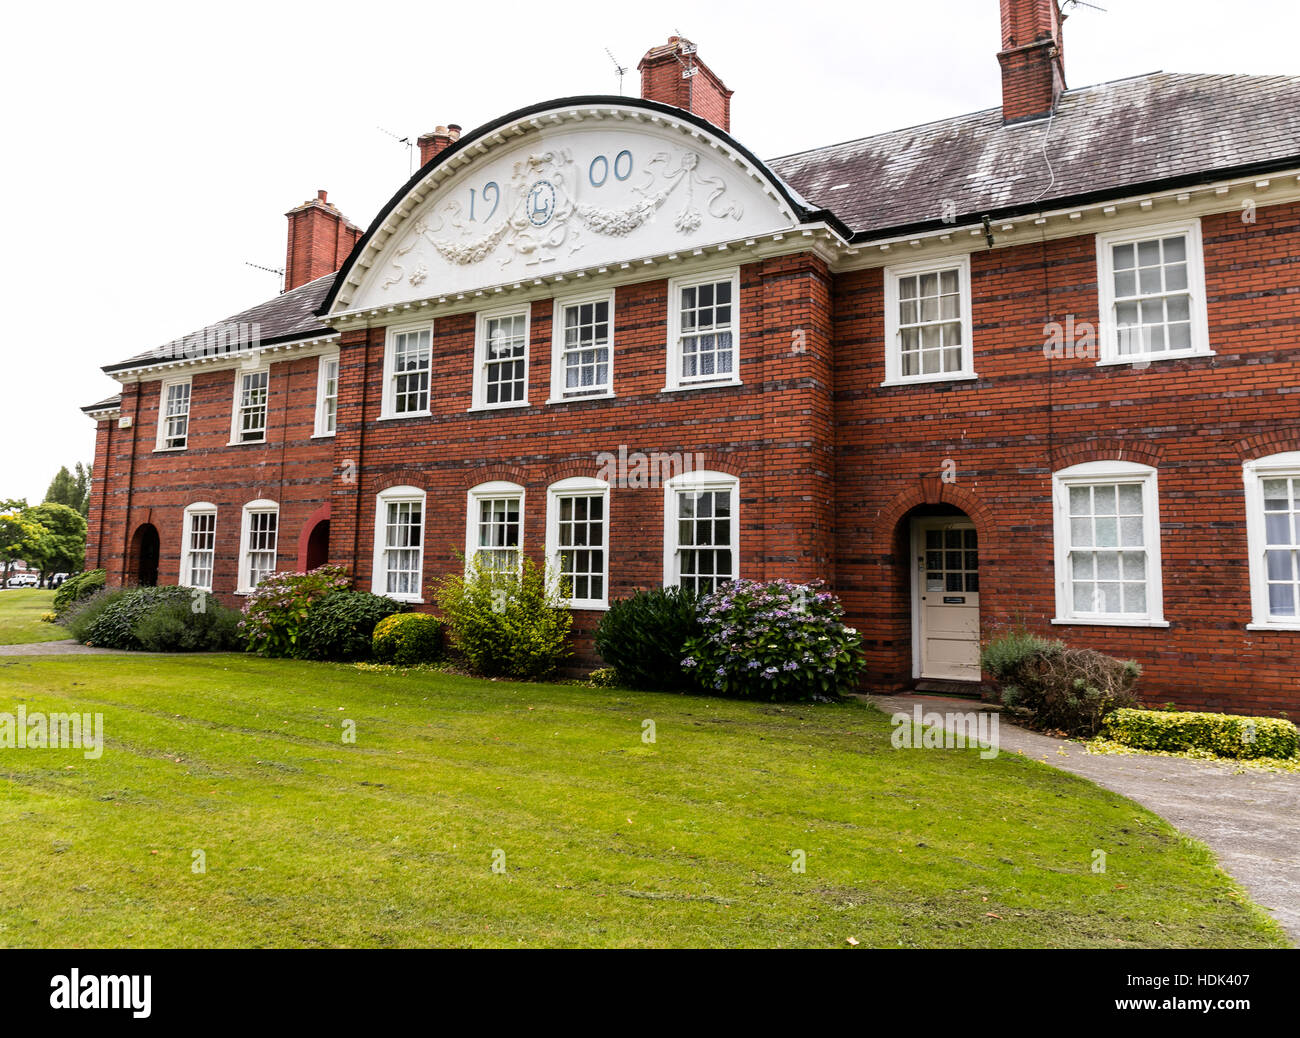 Port Sunlight Village, Wirral, Merseyside. England Stock Photo